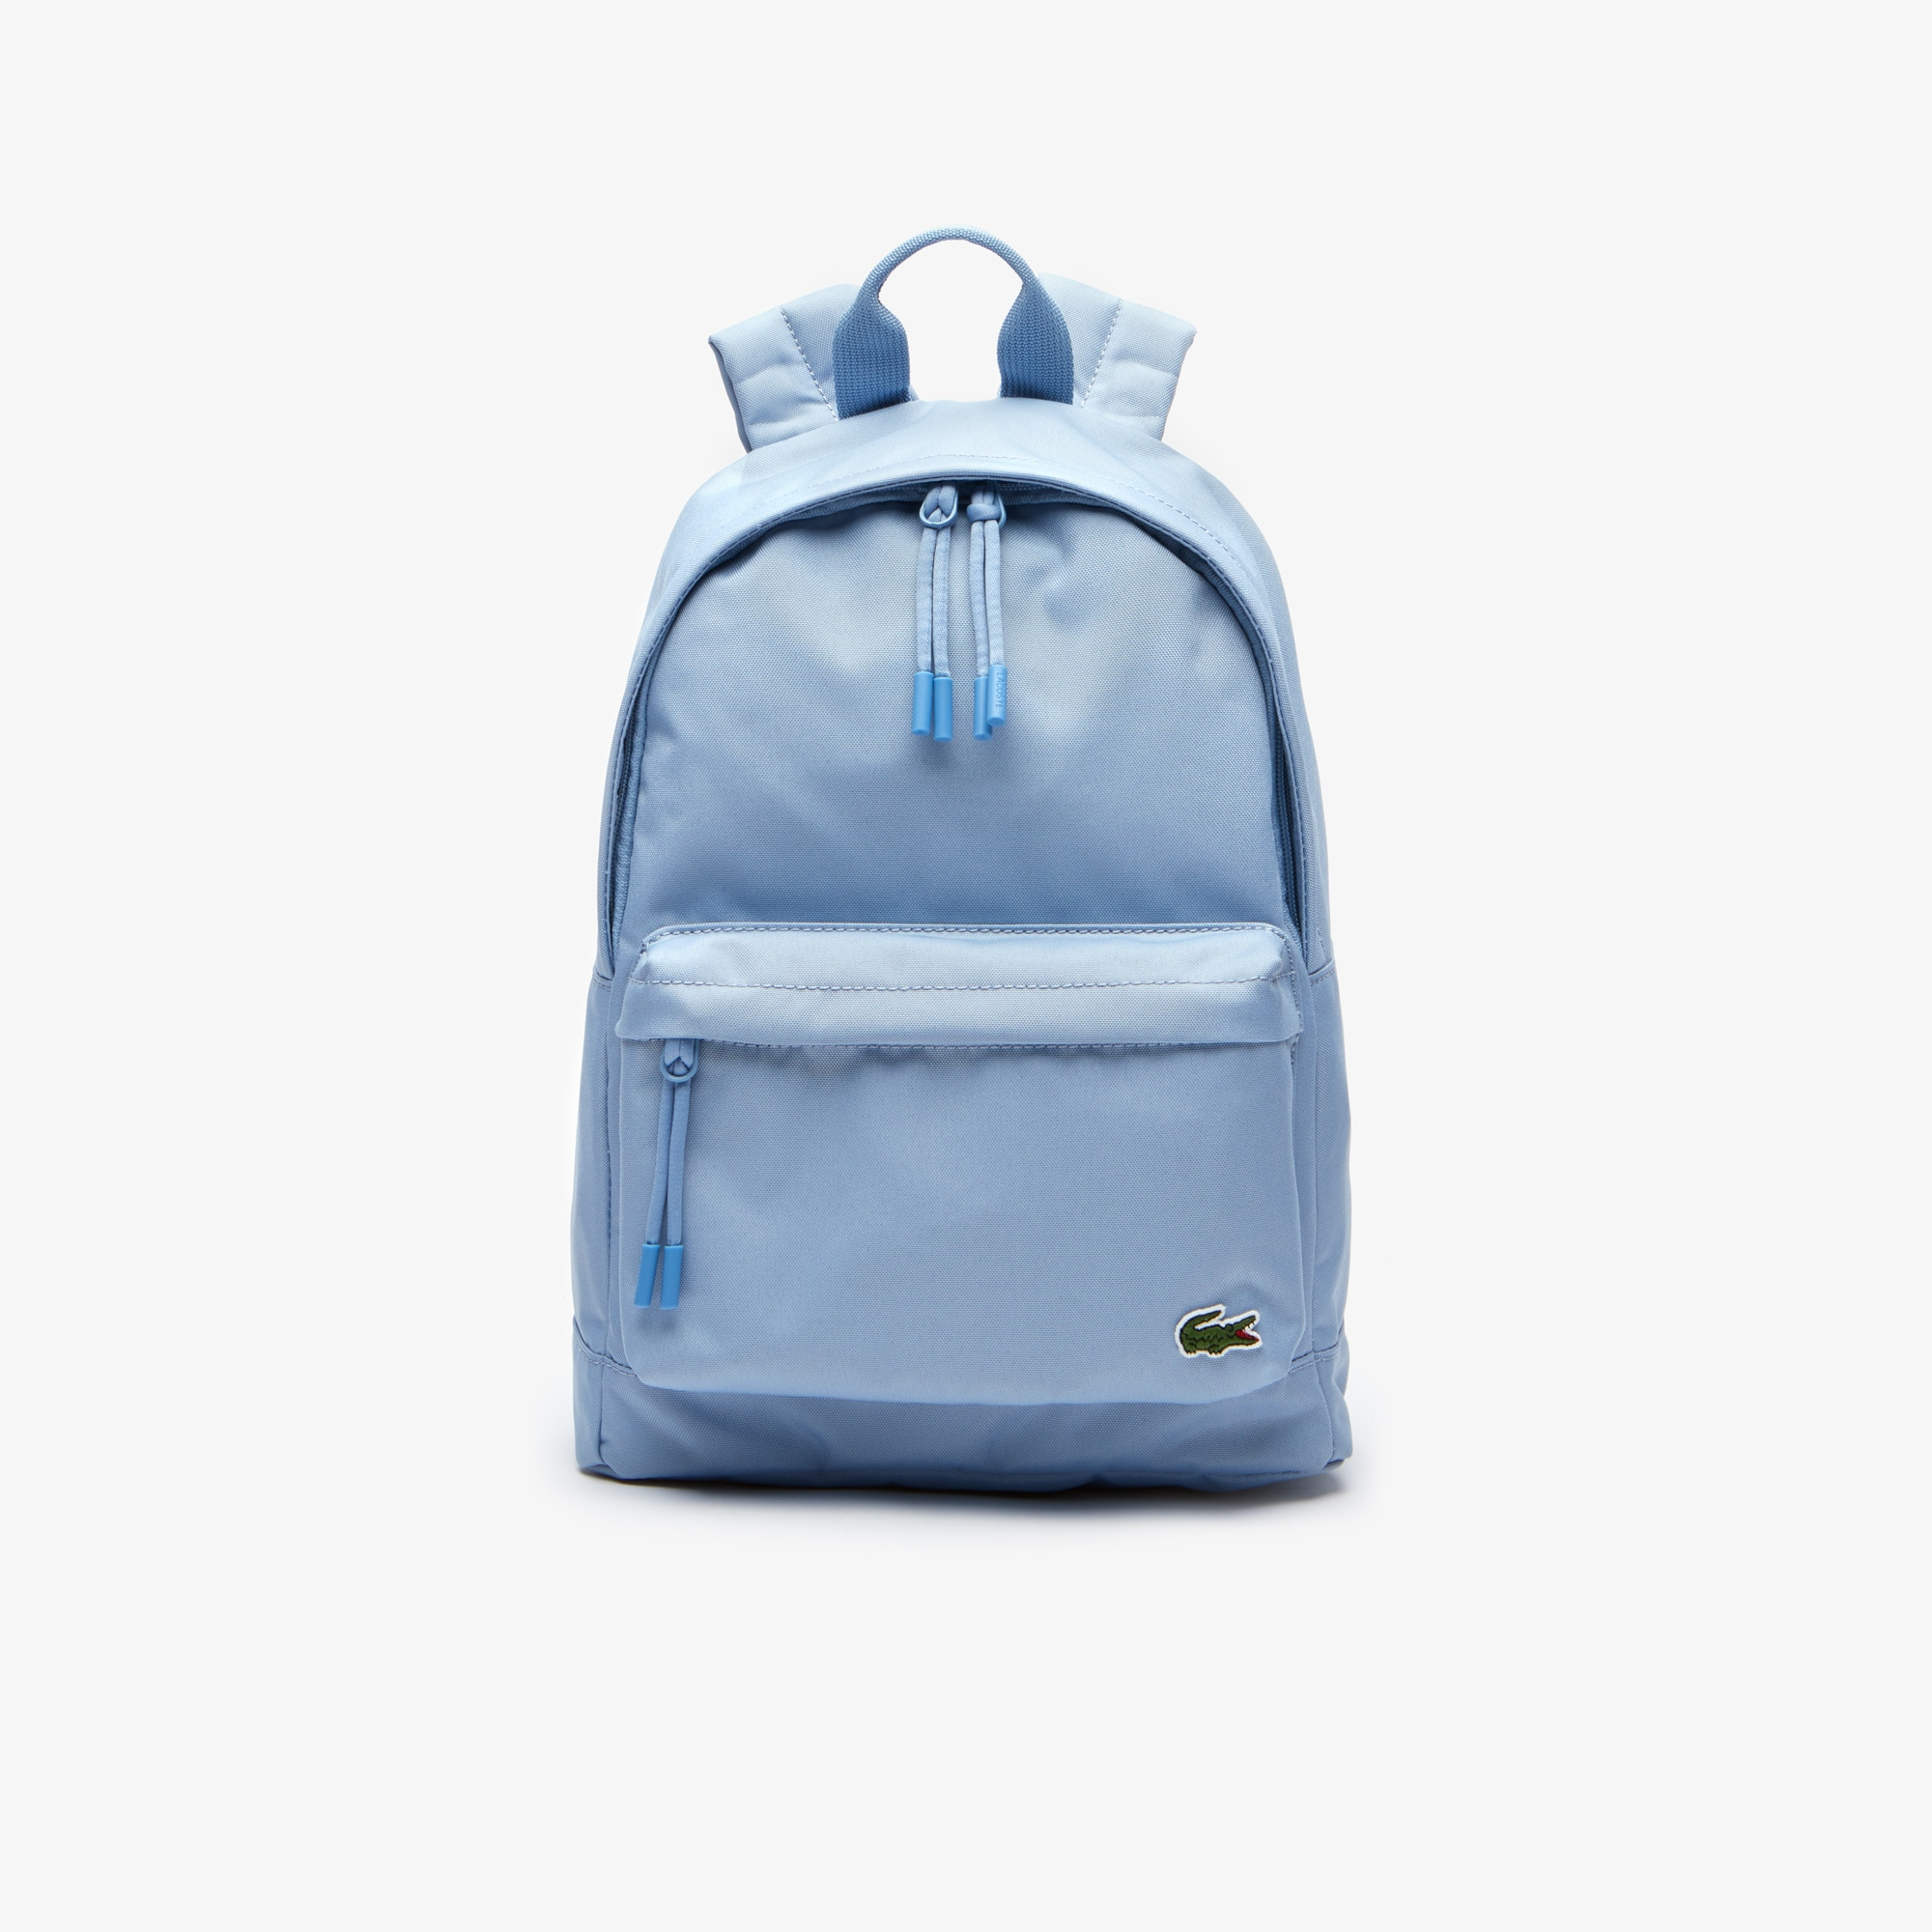 3c5f45e9a43 Men's Neocroc Small Canvas Backpack | LACOSTE